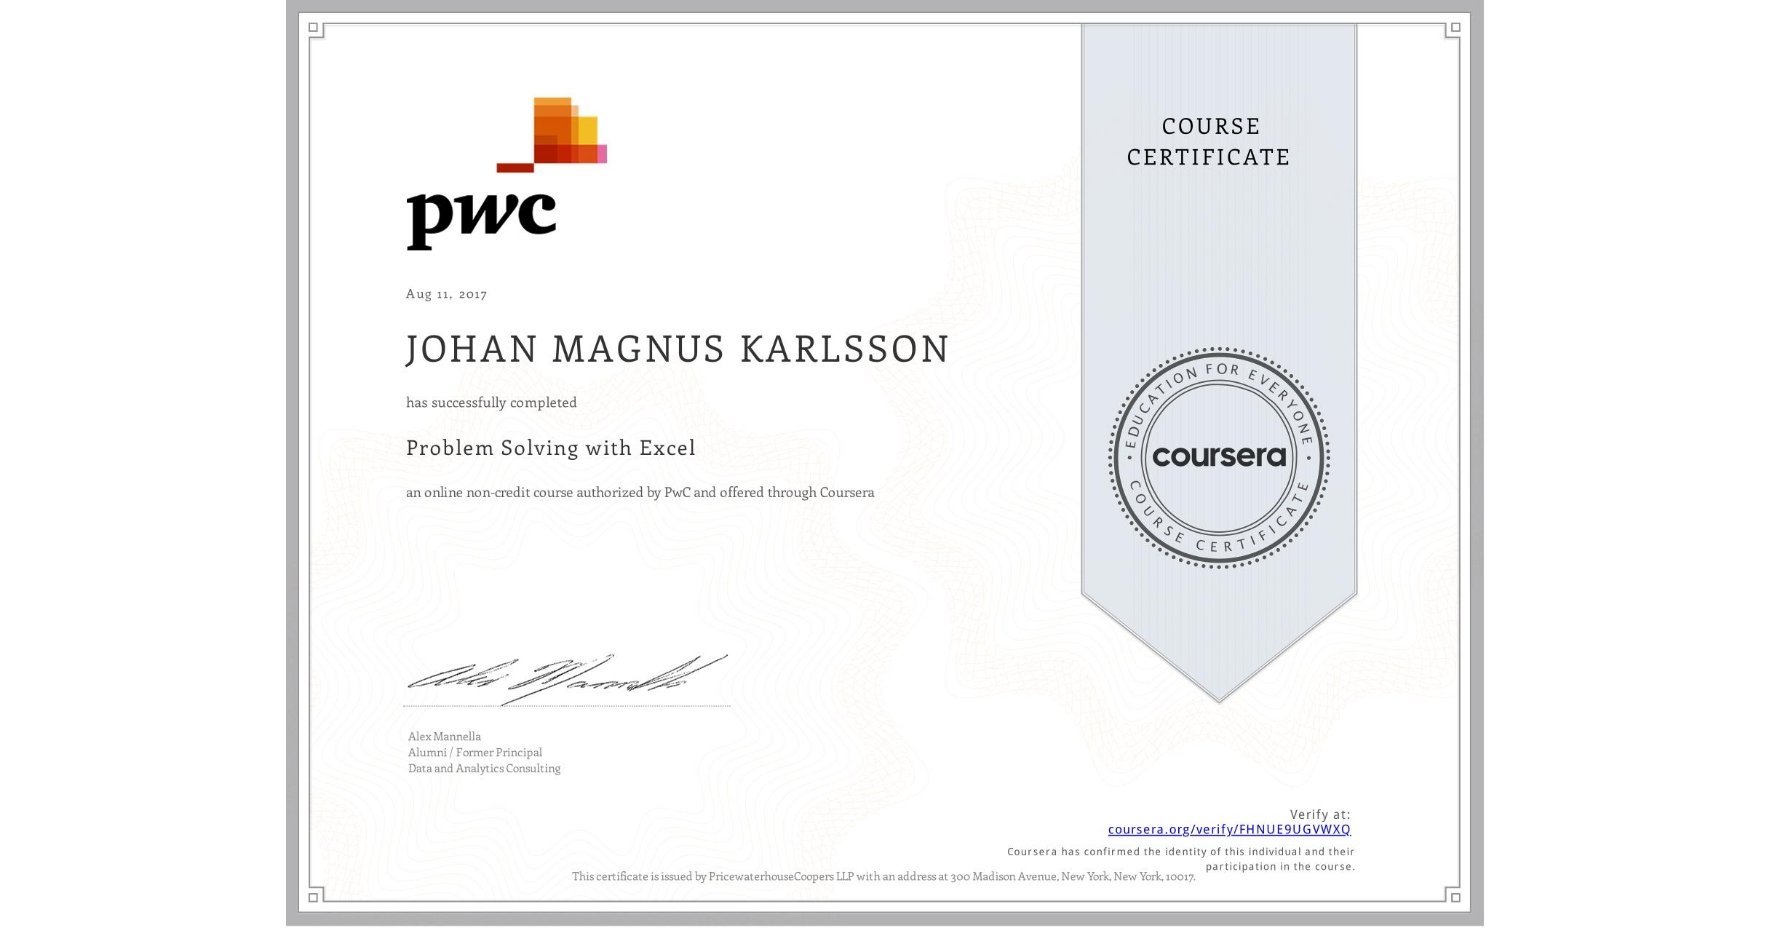 View certificate for JOHAN MAGNUS  KARLSSON, Problem Solving with Excel , an online non-credit course authorized by PwC and offered through Coursera